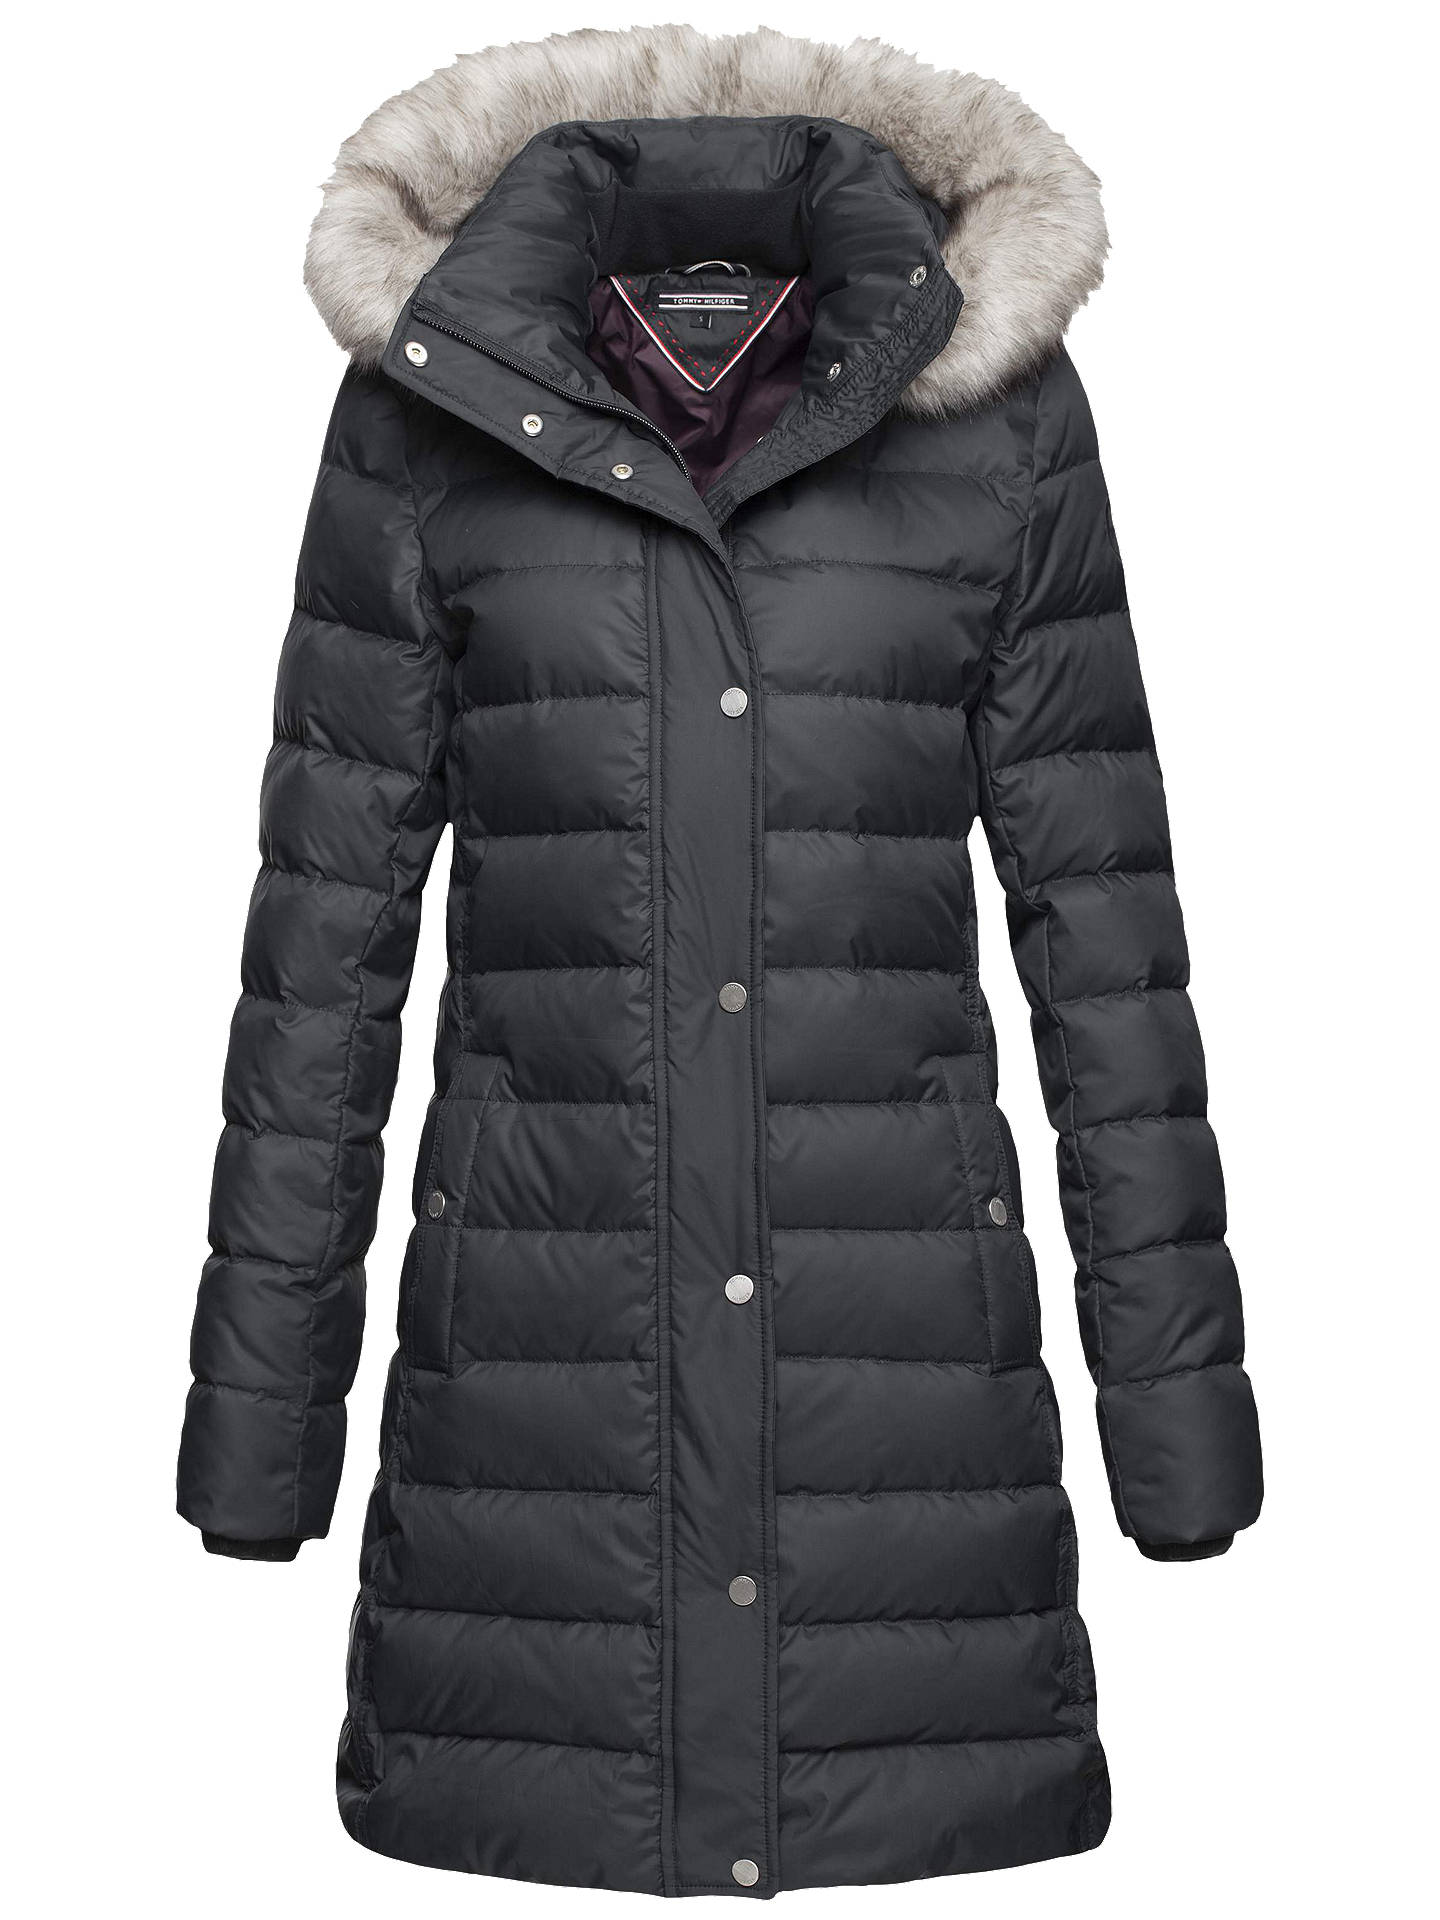 b7b2ad2a Buy Tommy Hilfiger Tyra Down Coat, Masters Black, S Online at johnlewis.com  ...